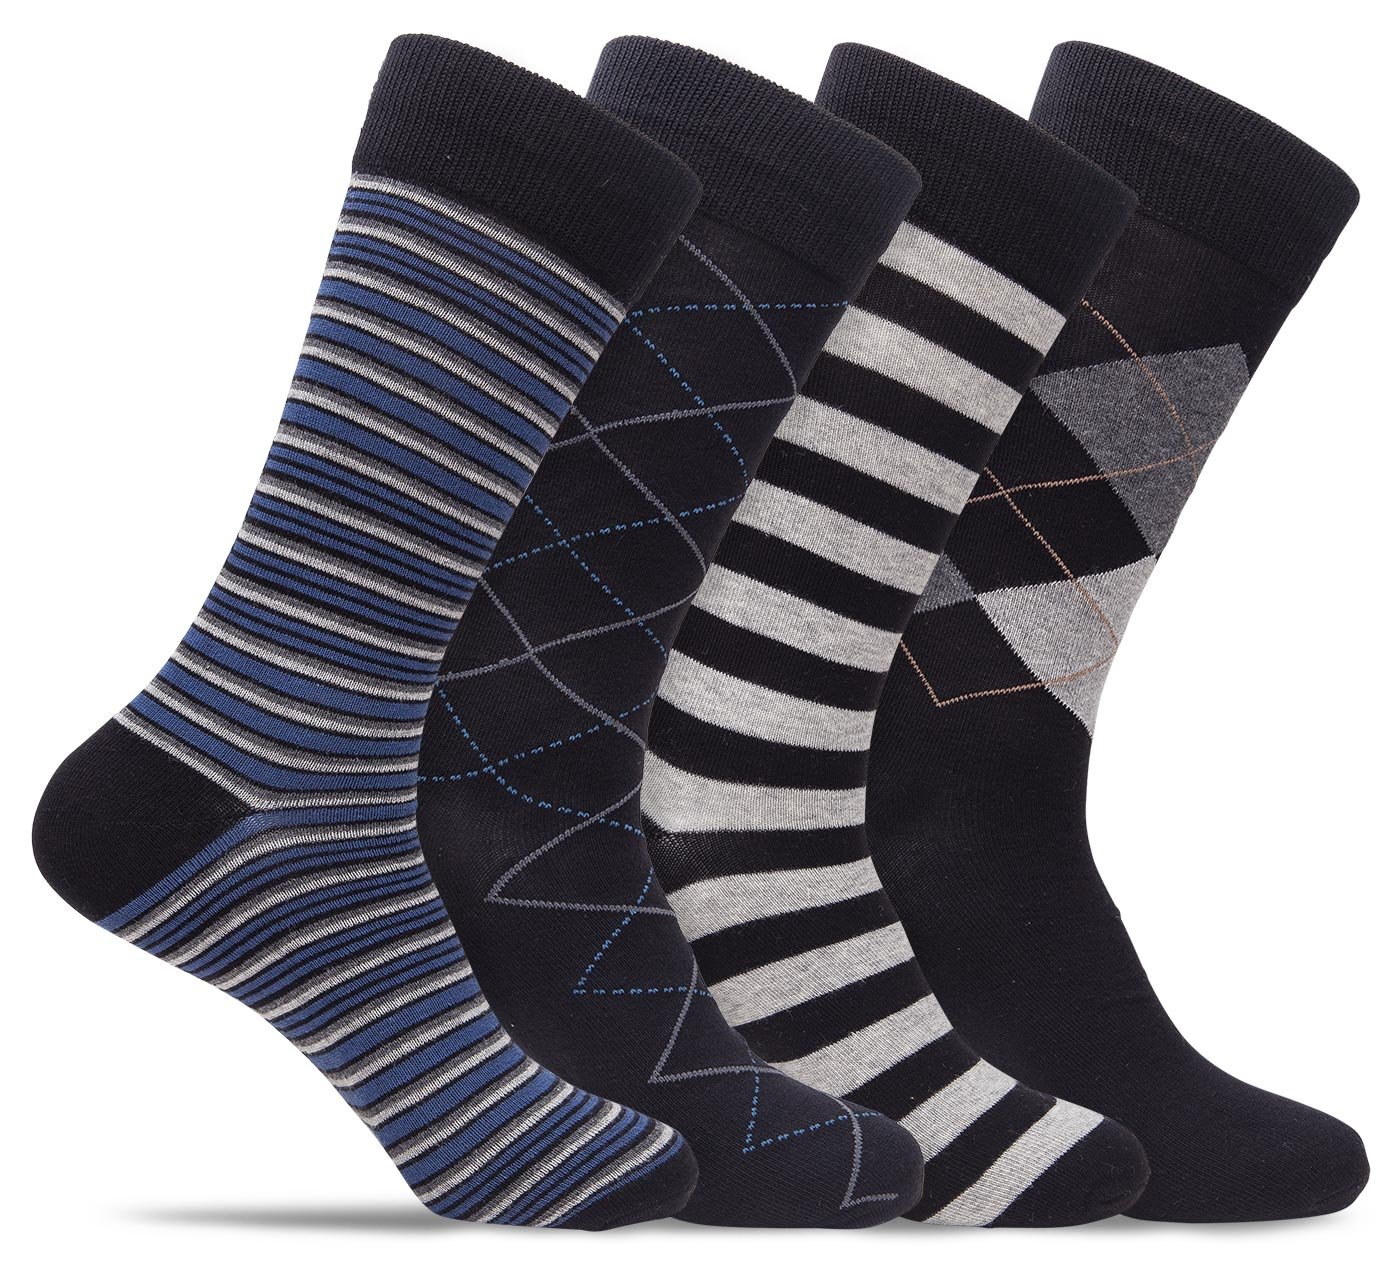 Mens 4 Pack of Cotton Blend Fun, Funky and Colorful Business Dress Socks (Shoe: 8-12/Sock: 10-13, Black/Grey B)